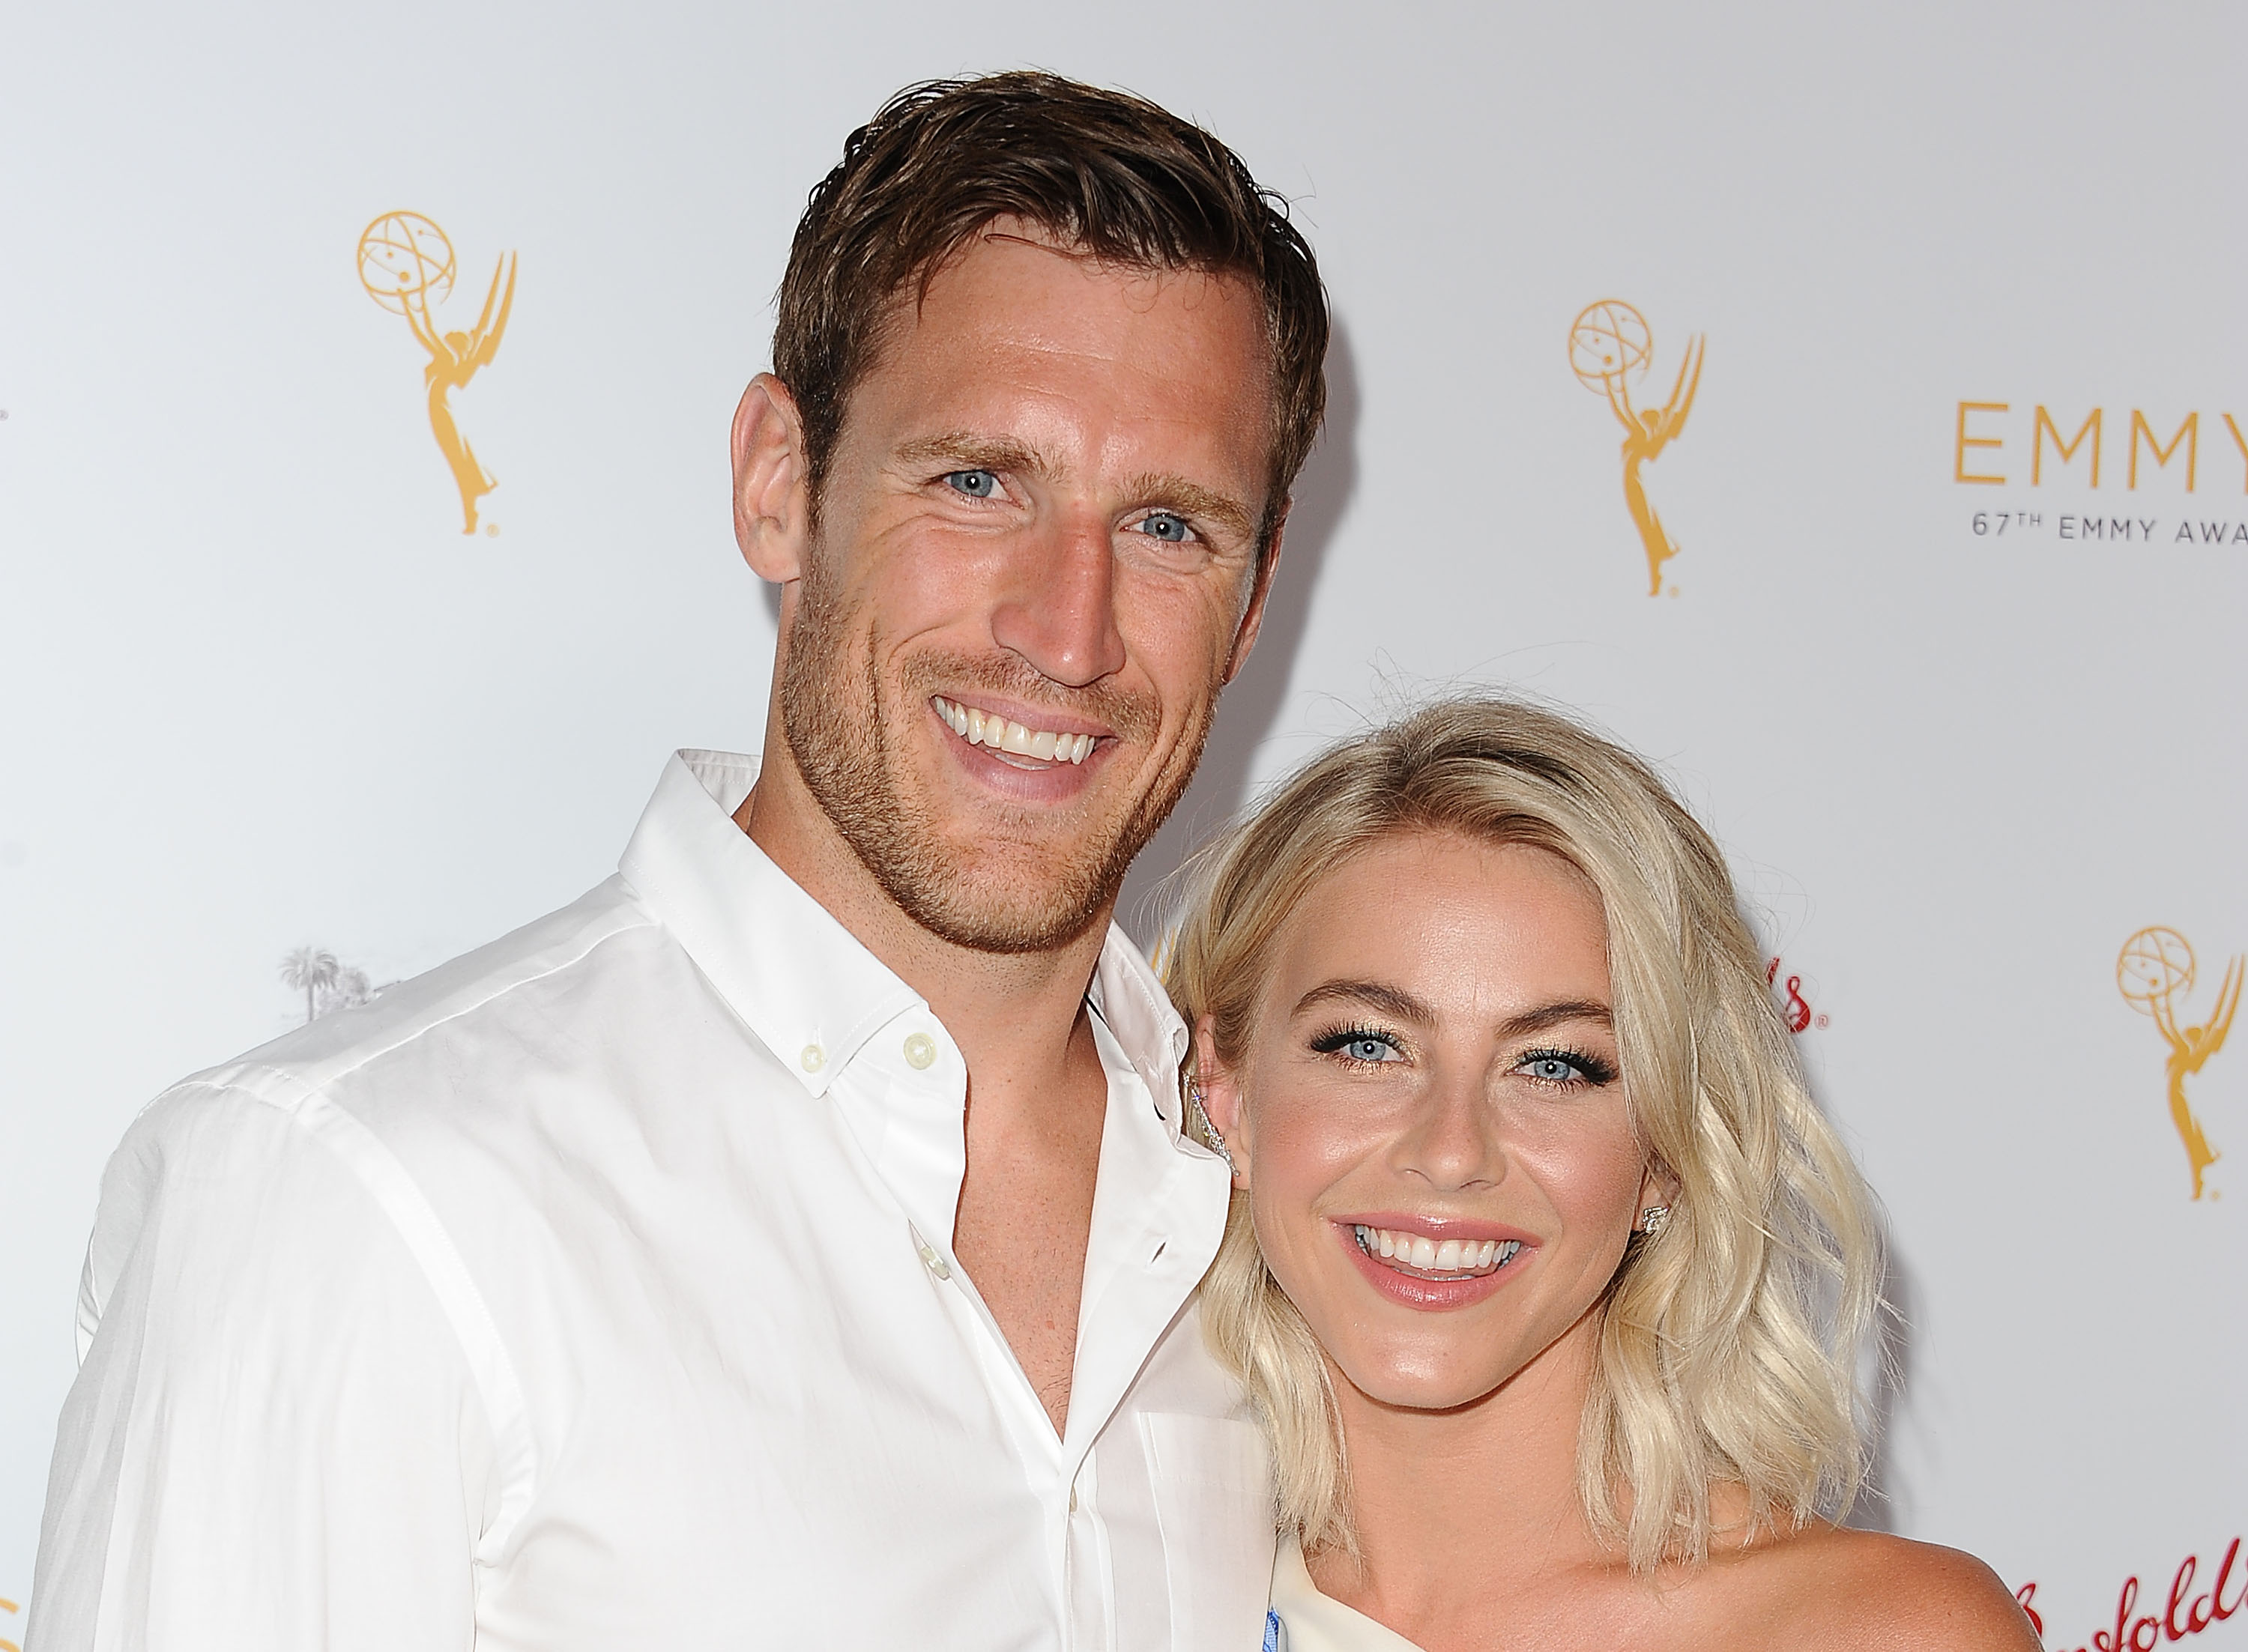 Julianne Hough Tied the Knot with NHL Player Brooks Laich